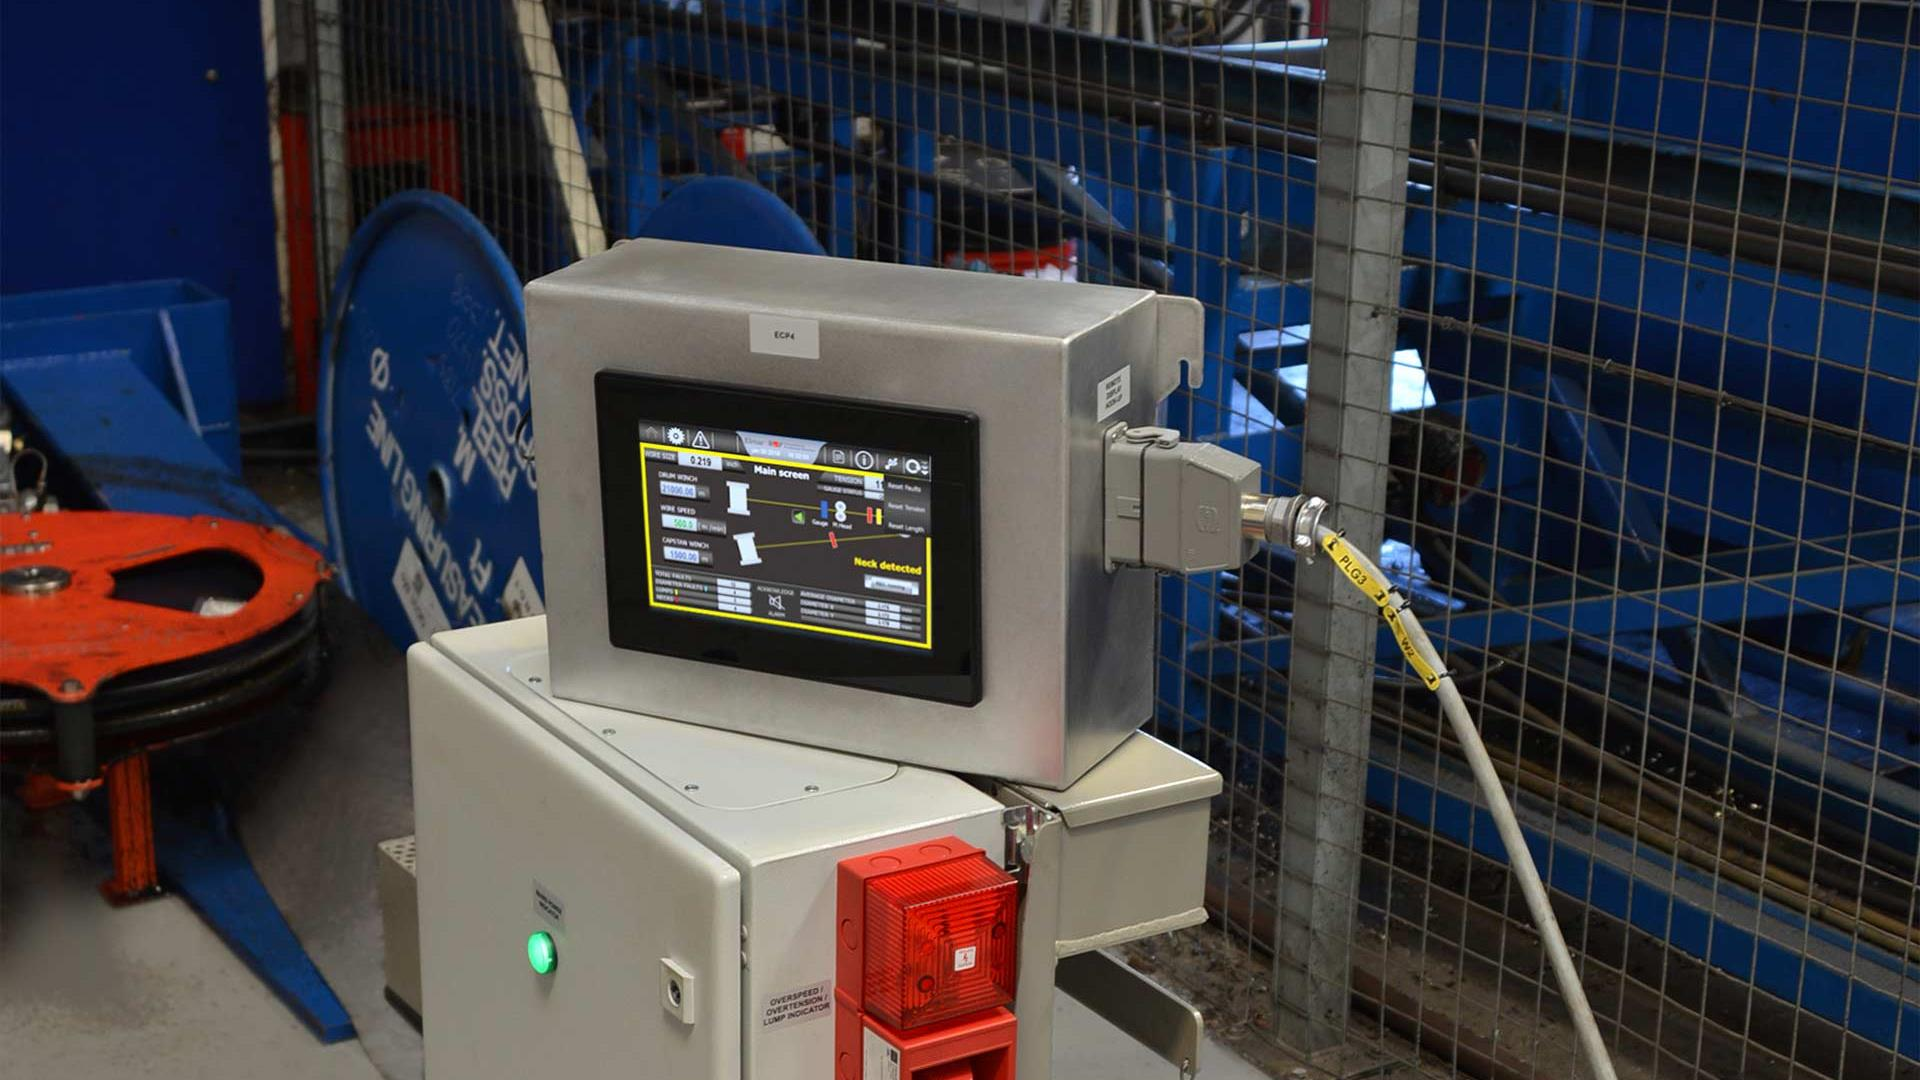 A WireRight Monitoring and Recording System with a screen